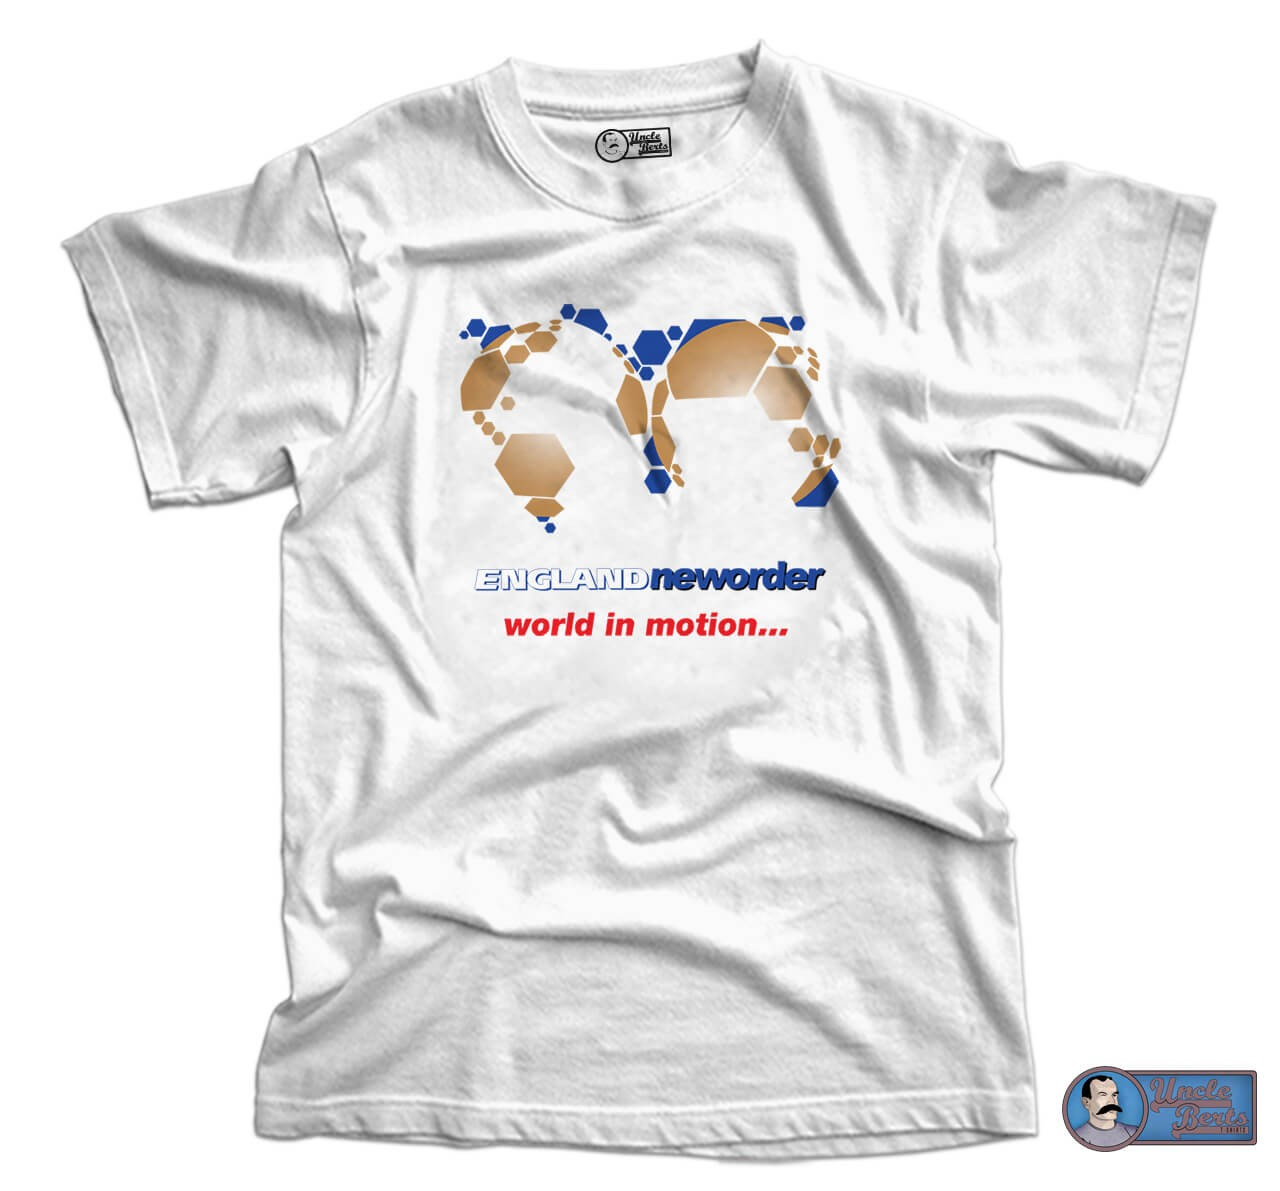 632c3f37d World in Motion England New Order T-Shirt - uncleberts.co.uk Store View